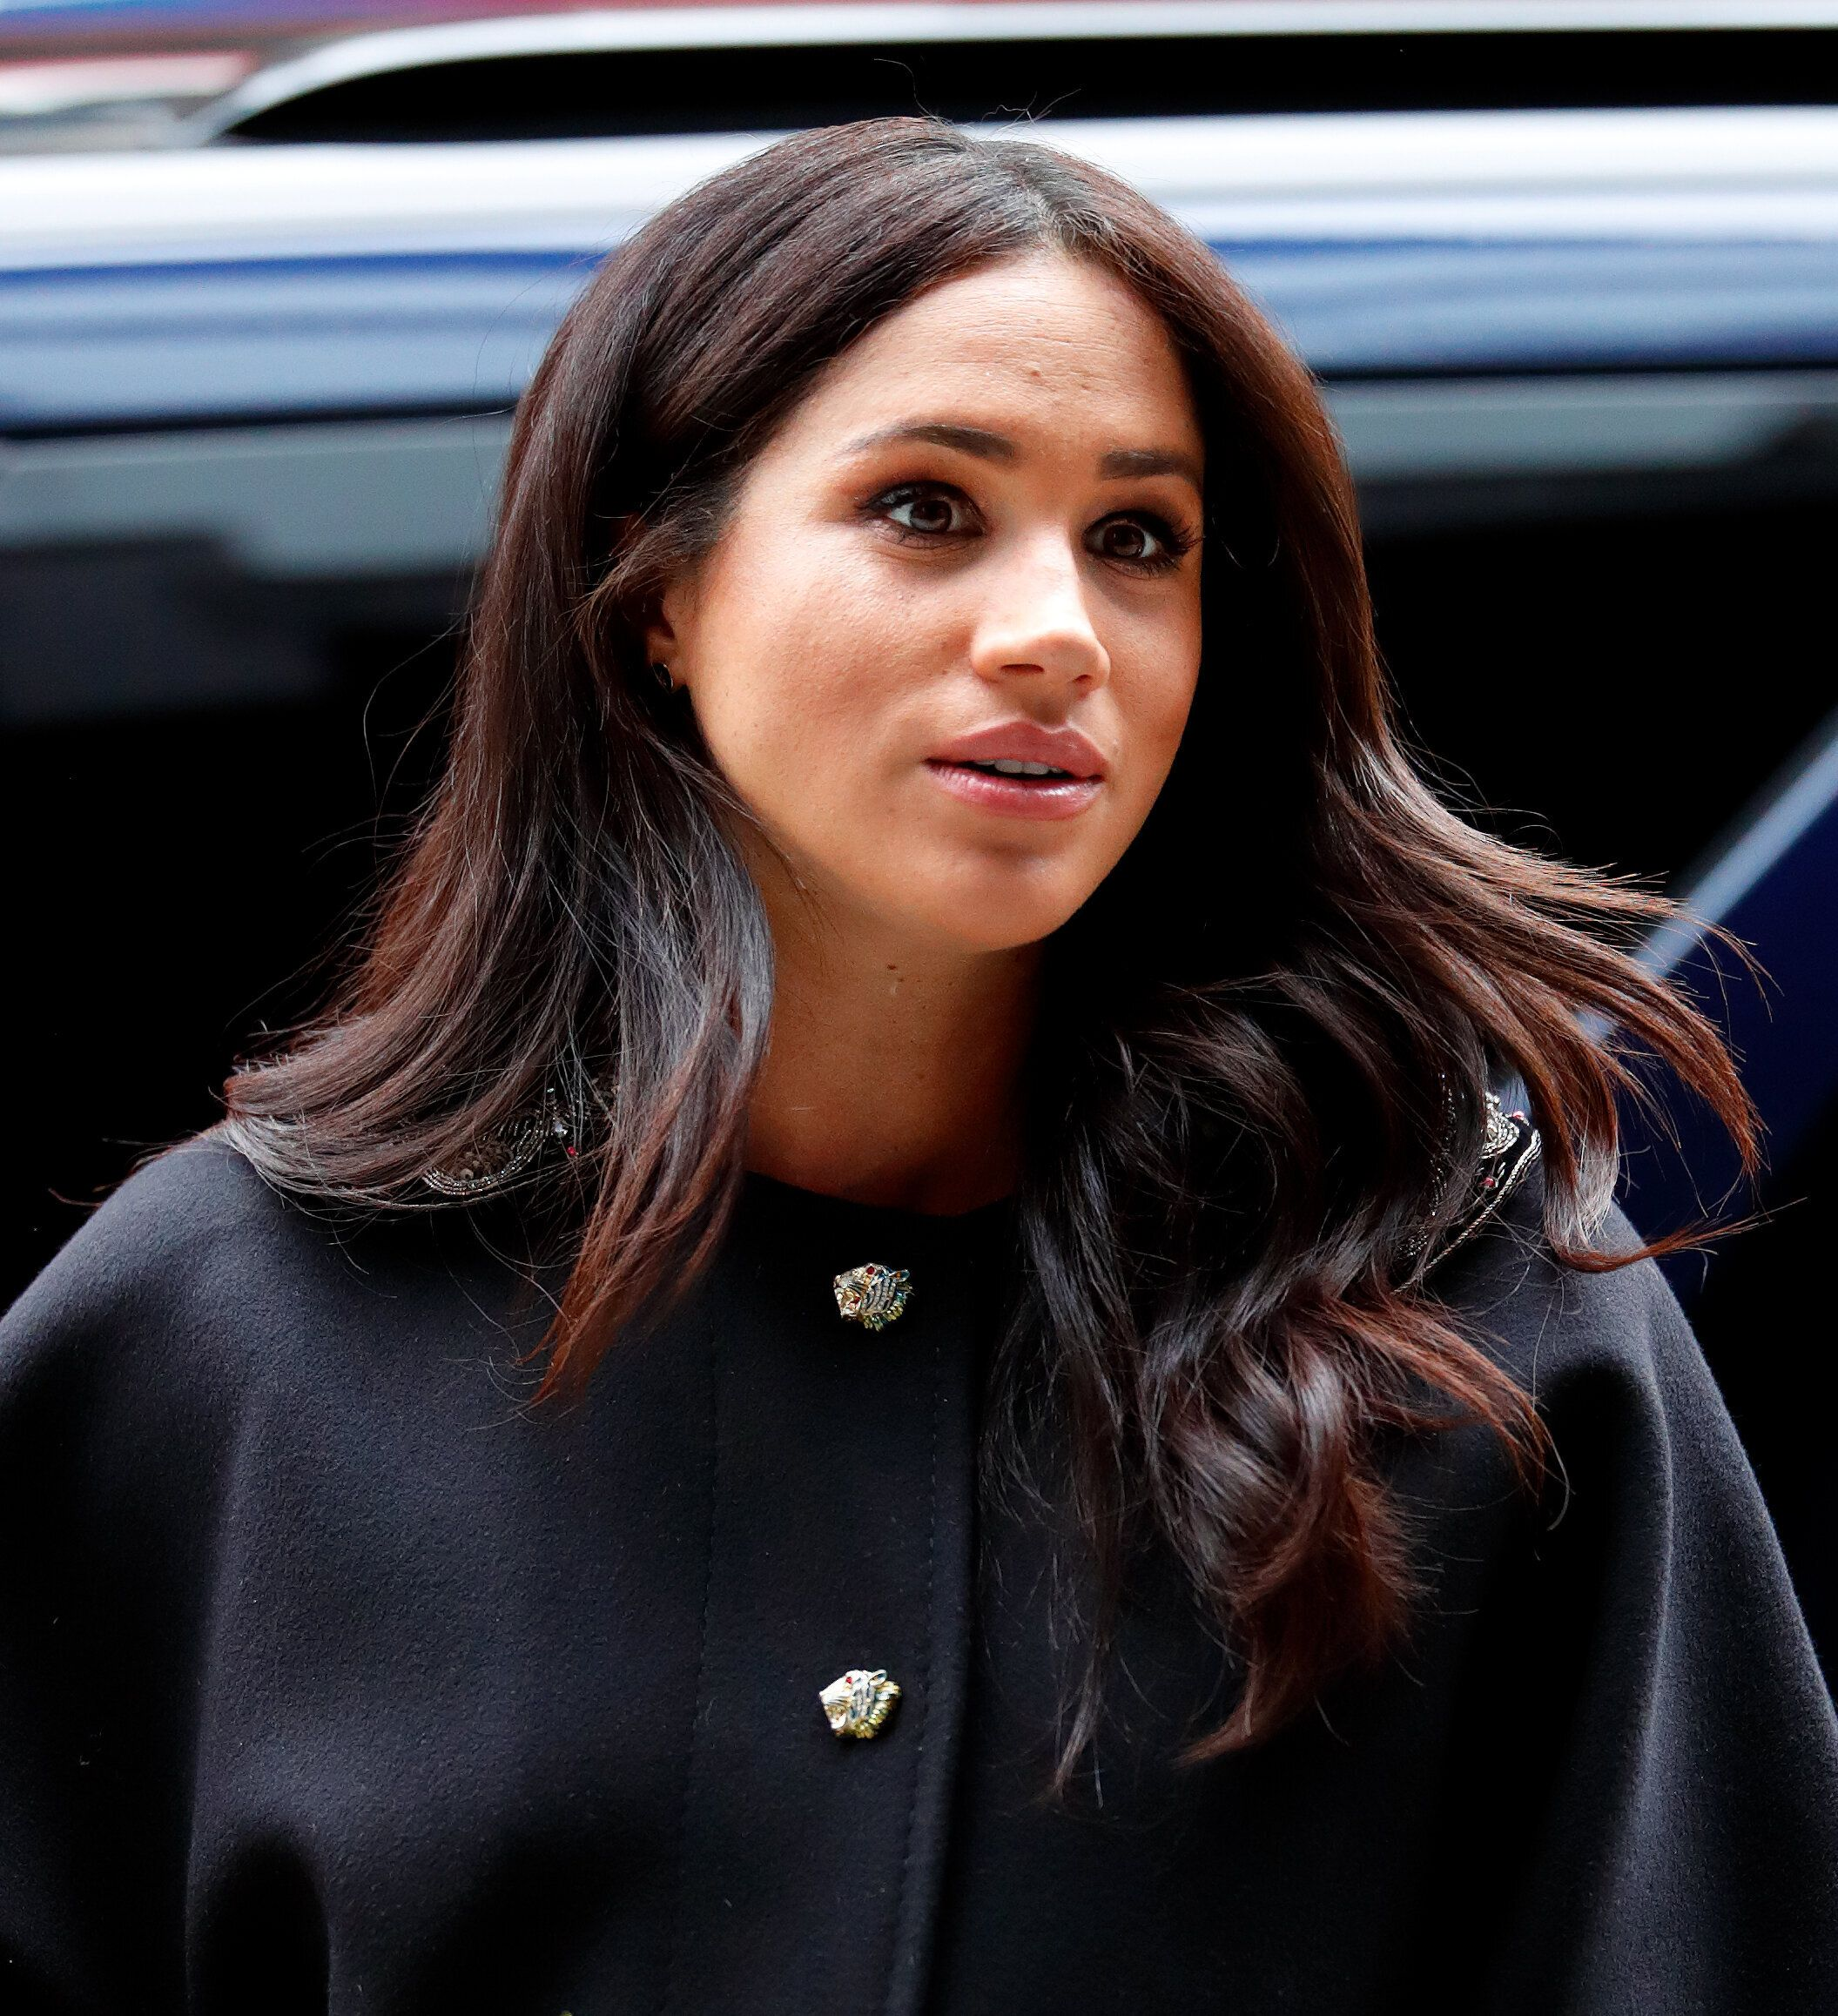 The Duchess of Sussex wrote about her pregnancy loss.